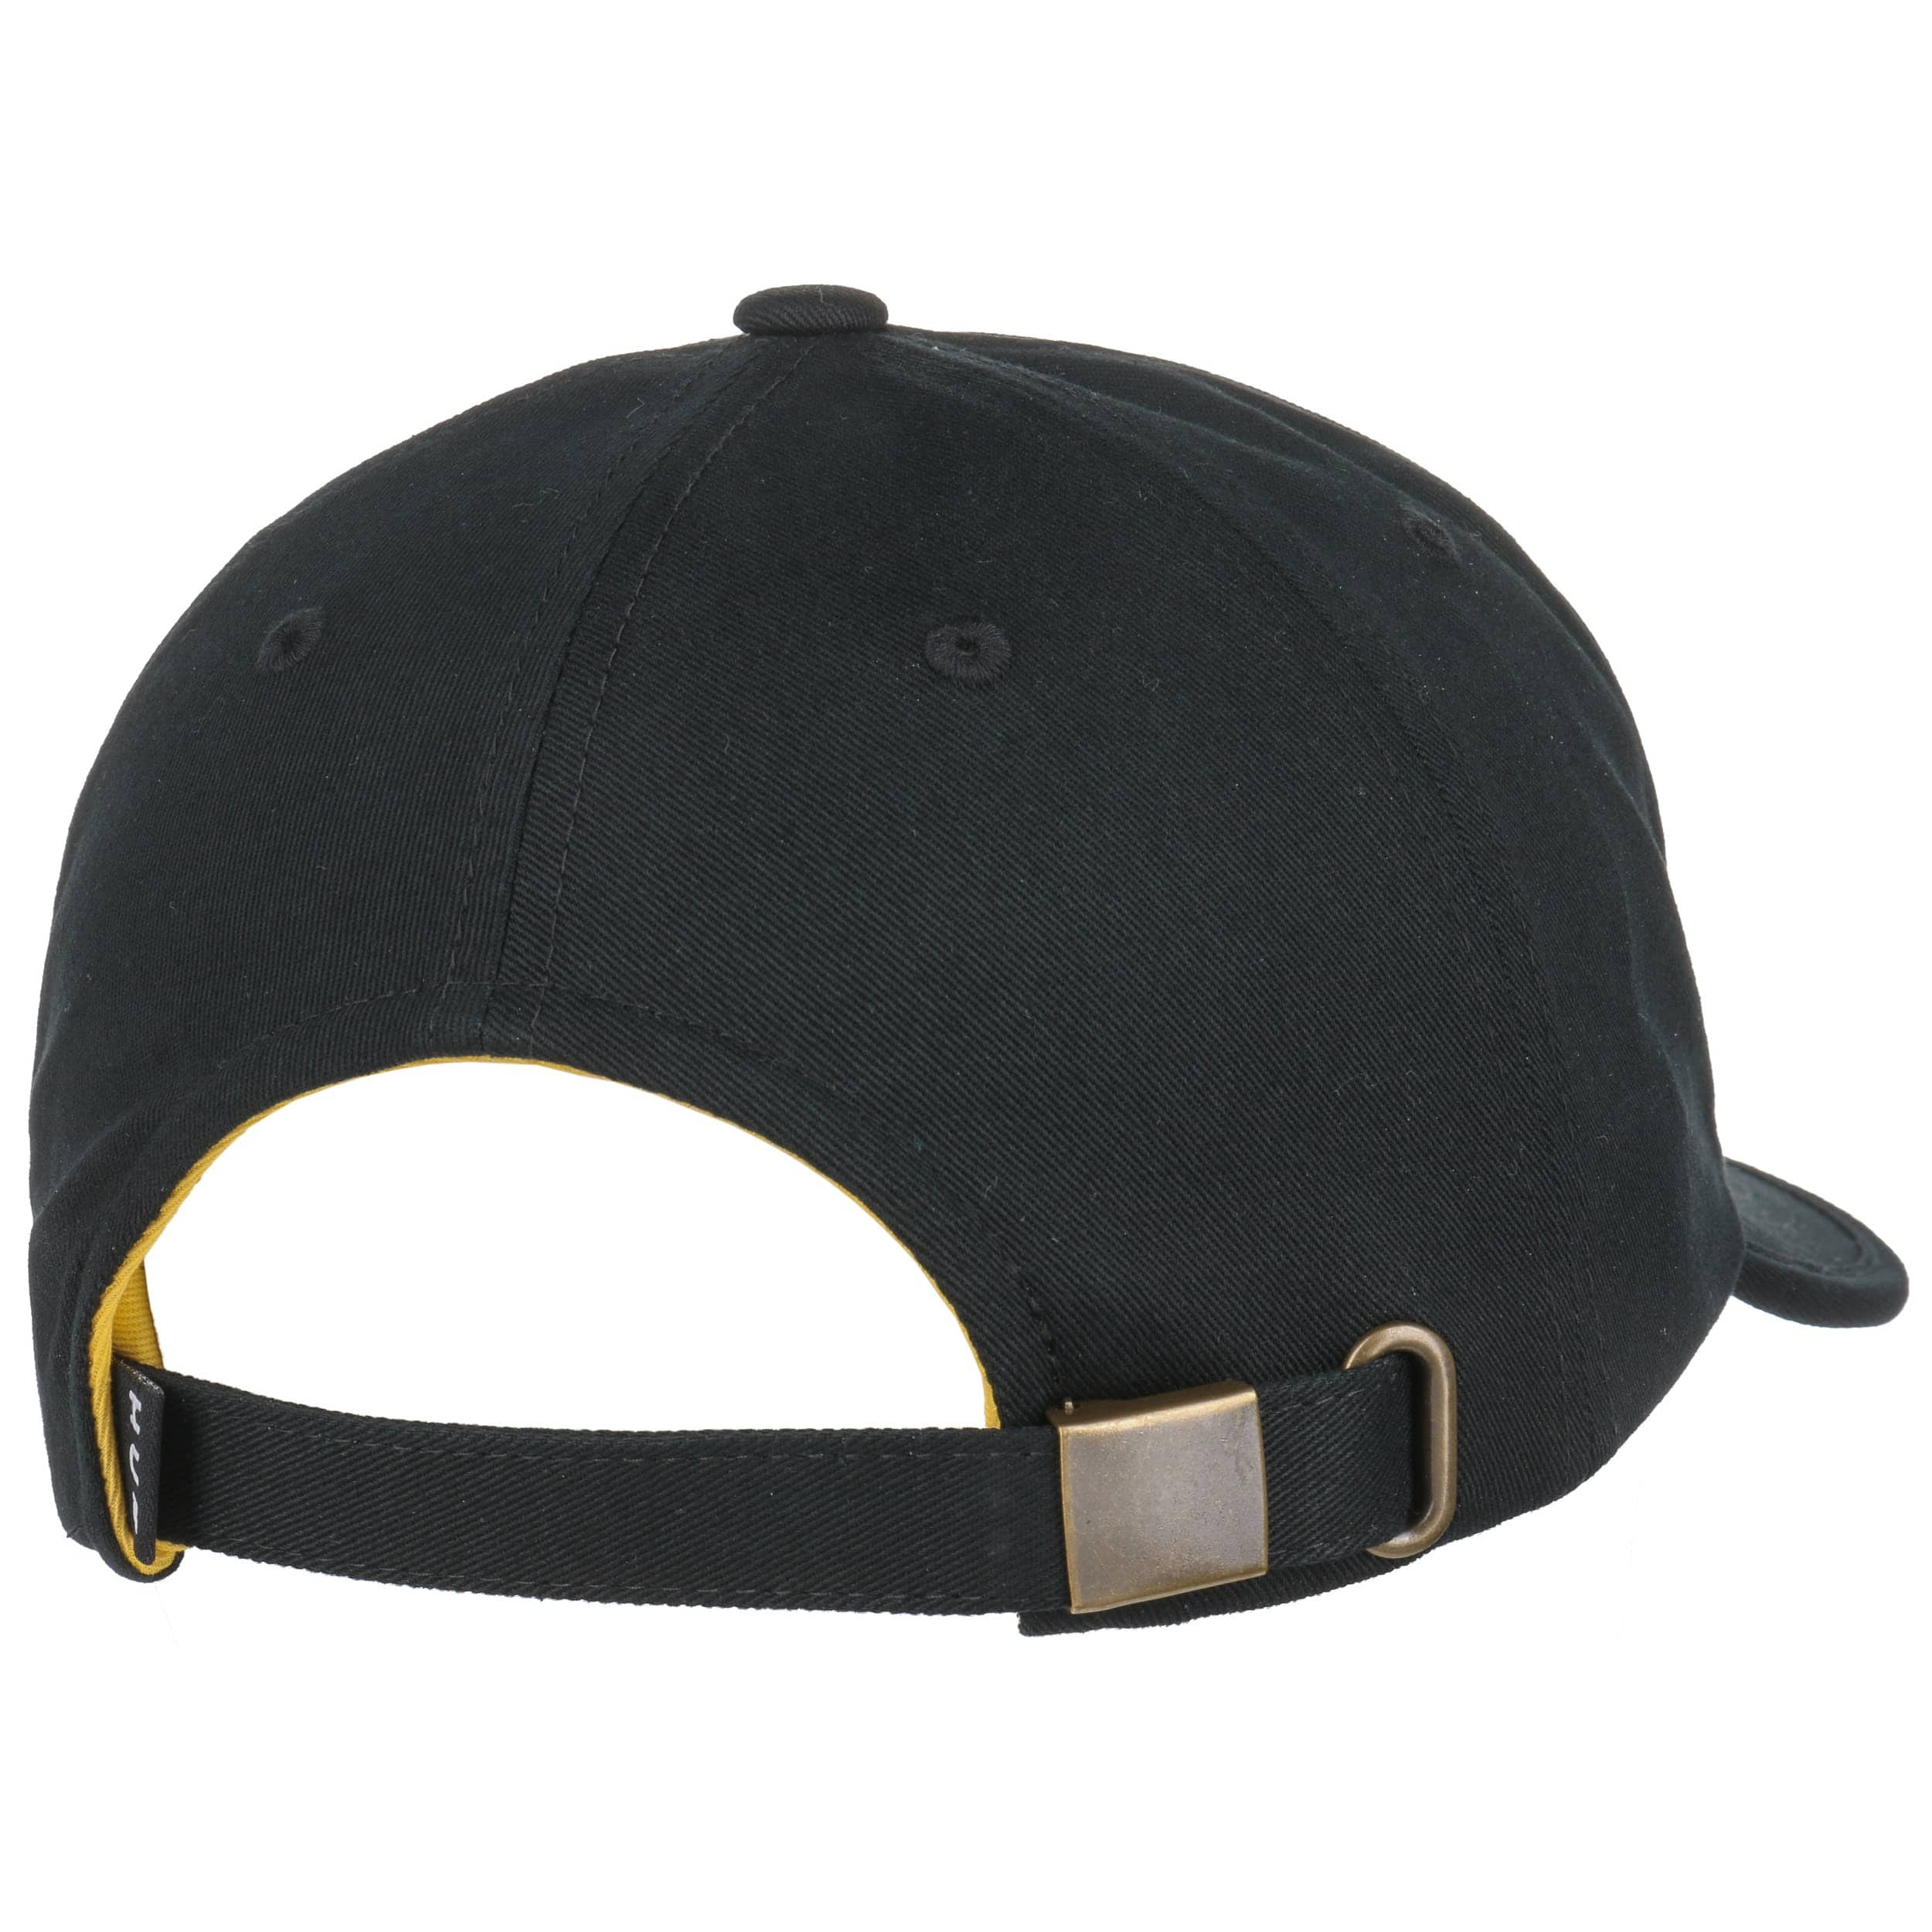 96d71f1e3c69d Casquette Strapback Formless Classic H by HUF